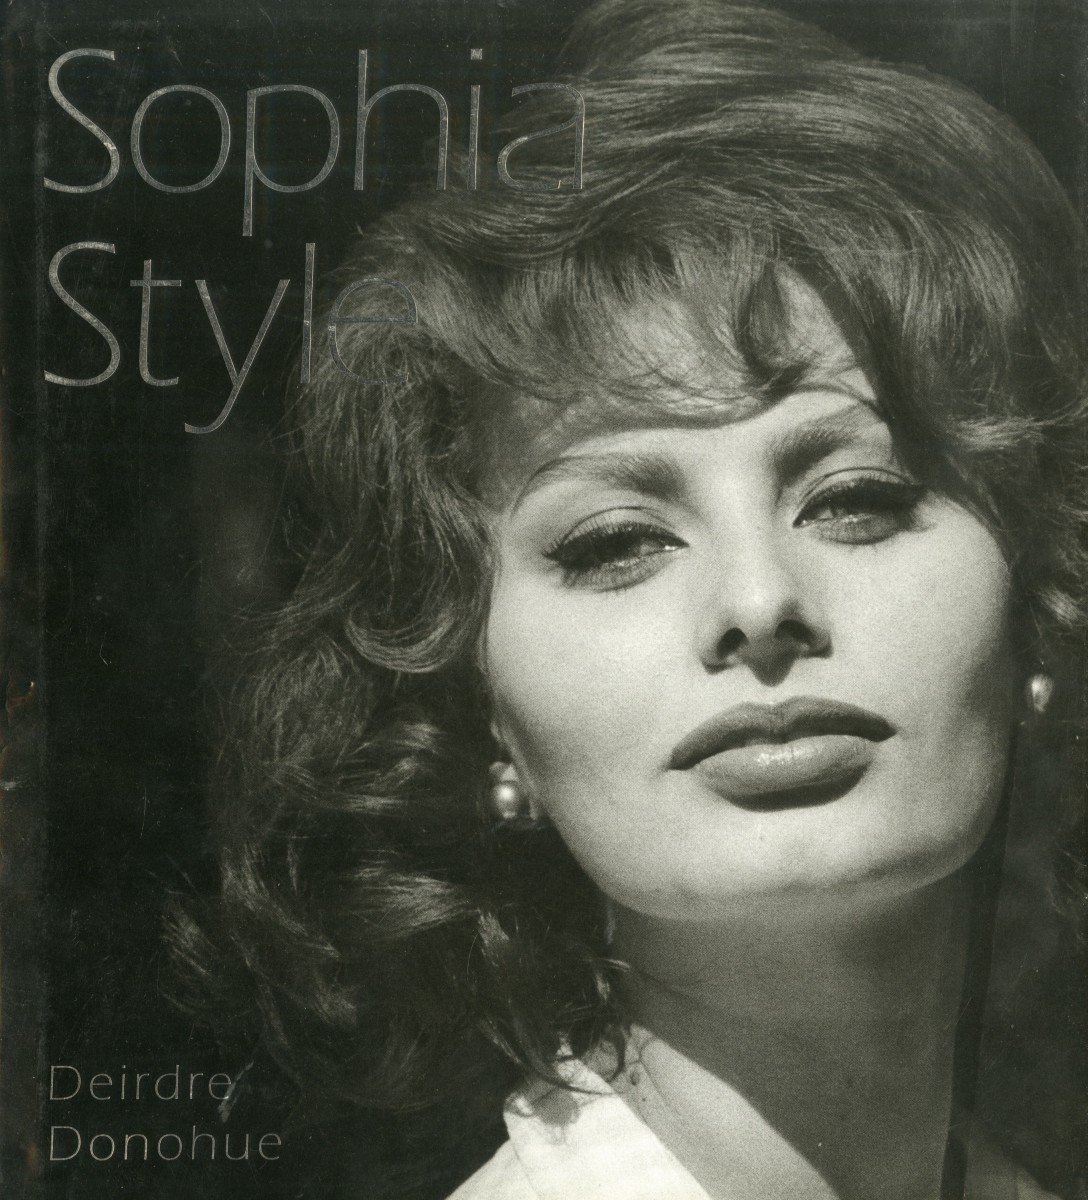 Sophia Style Photo